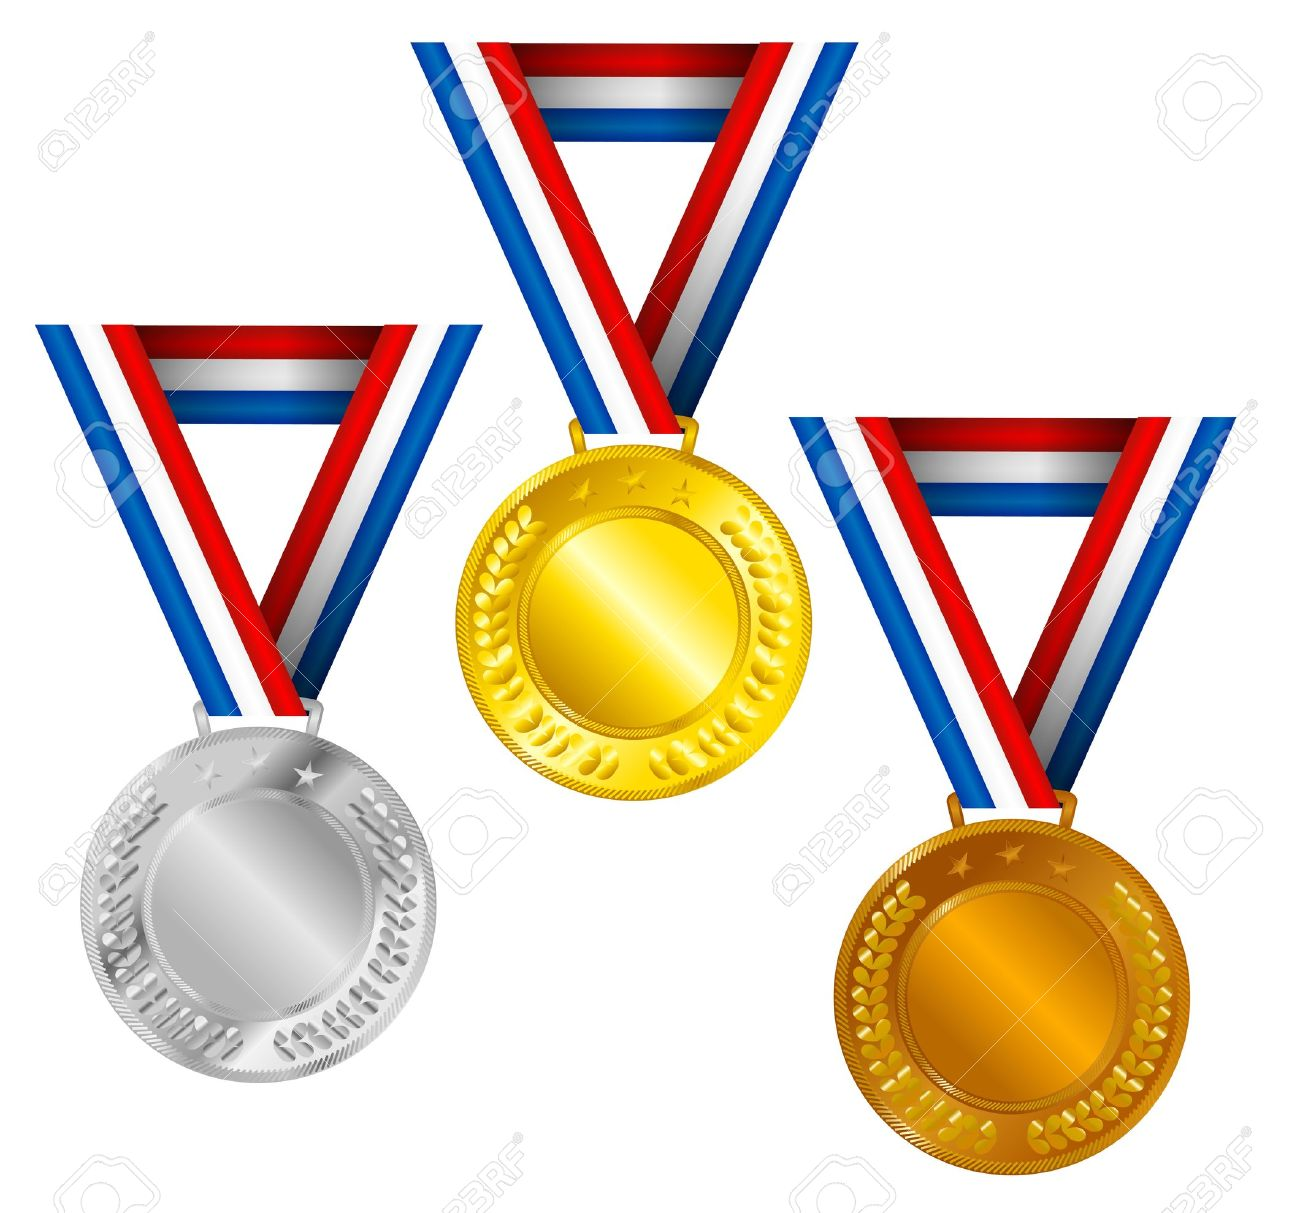 5 clipart ribbon. Medal station